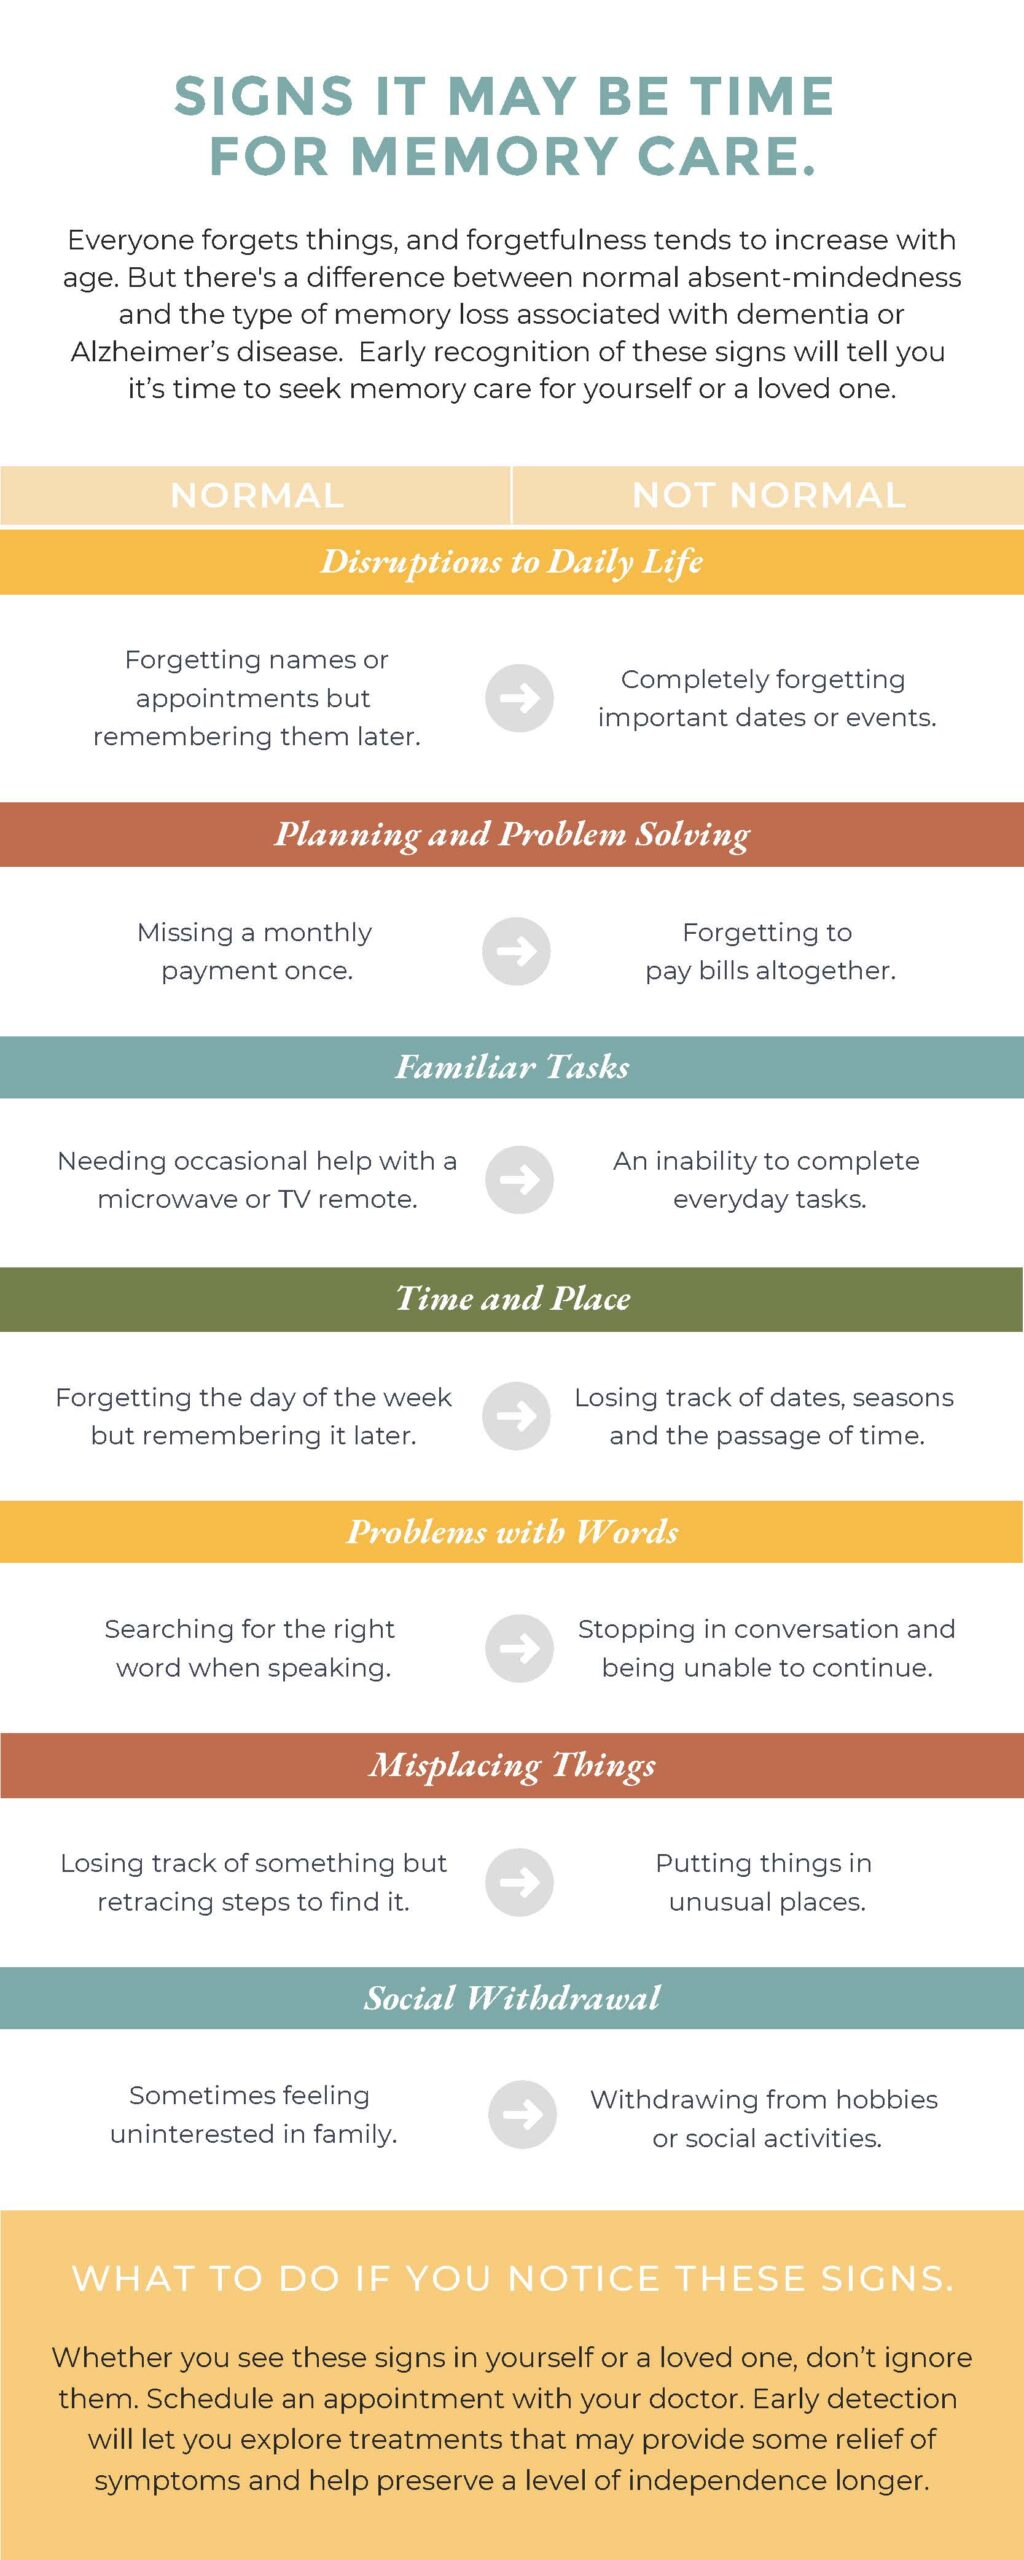 infographic showing the signs for memory care